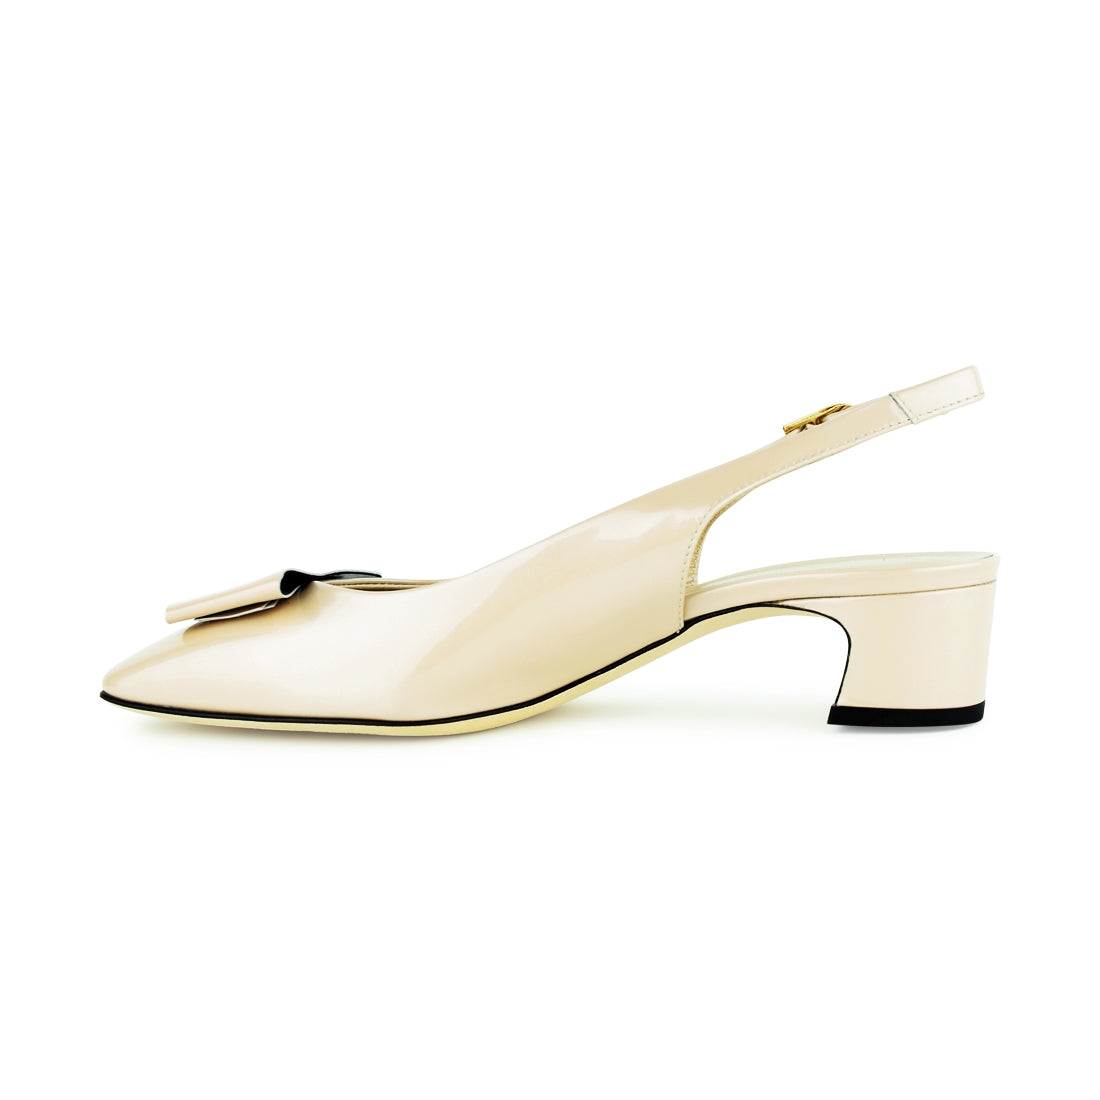 NICE - Amber Rossi Sling Back Nude Patent